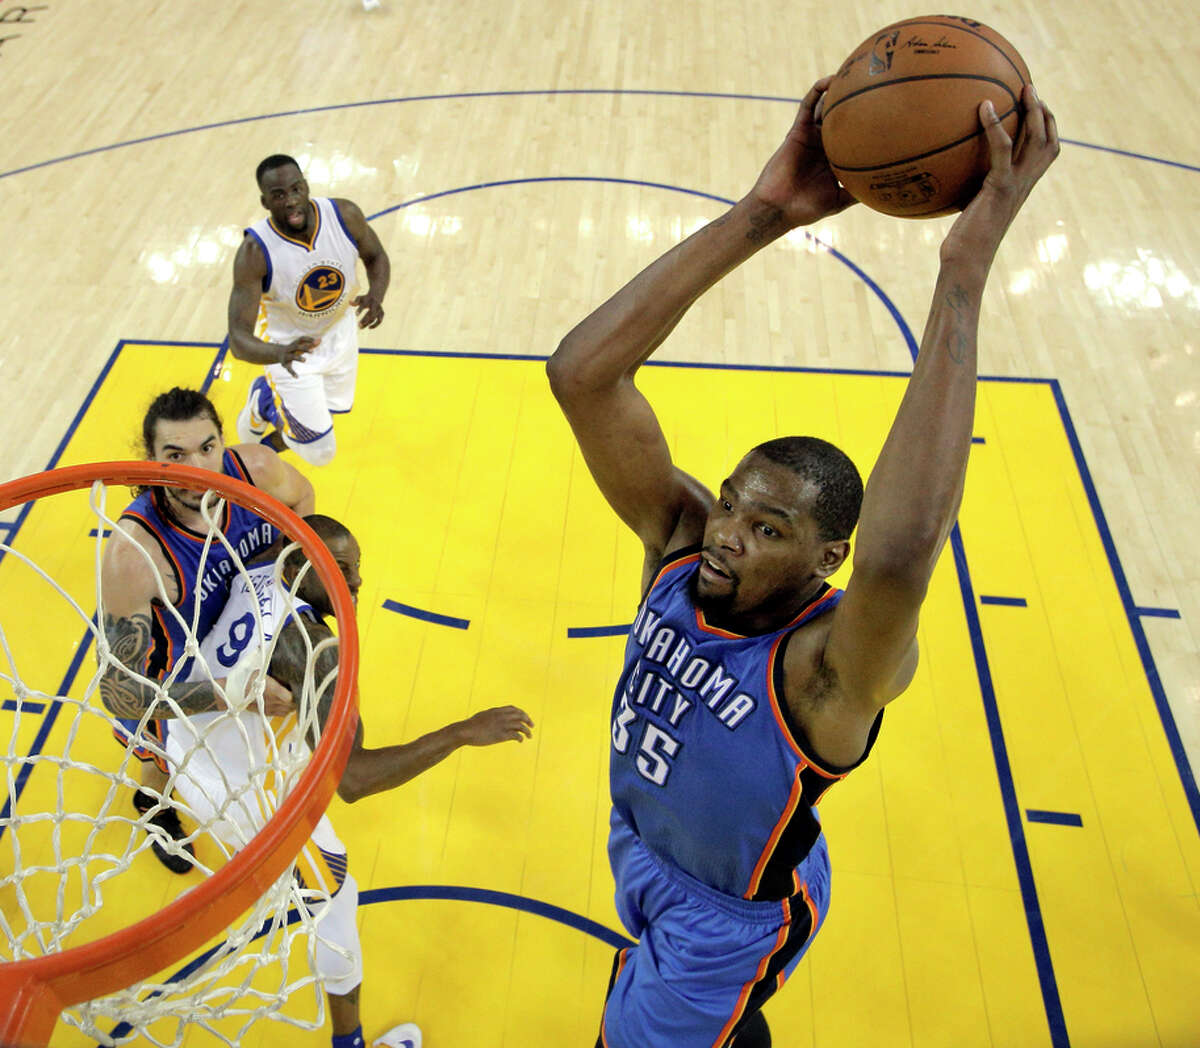 8. West also apparently told Durant that in playing with Golden State, the world would see that he was a complete player. Largely known as a scorer, West impressed upon Durant he could establish himself as a defender with the Warriors.